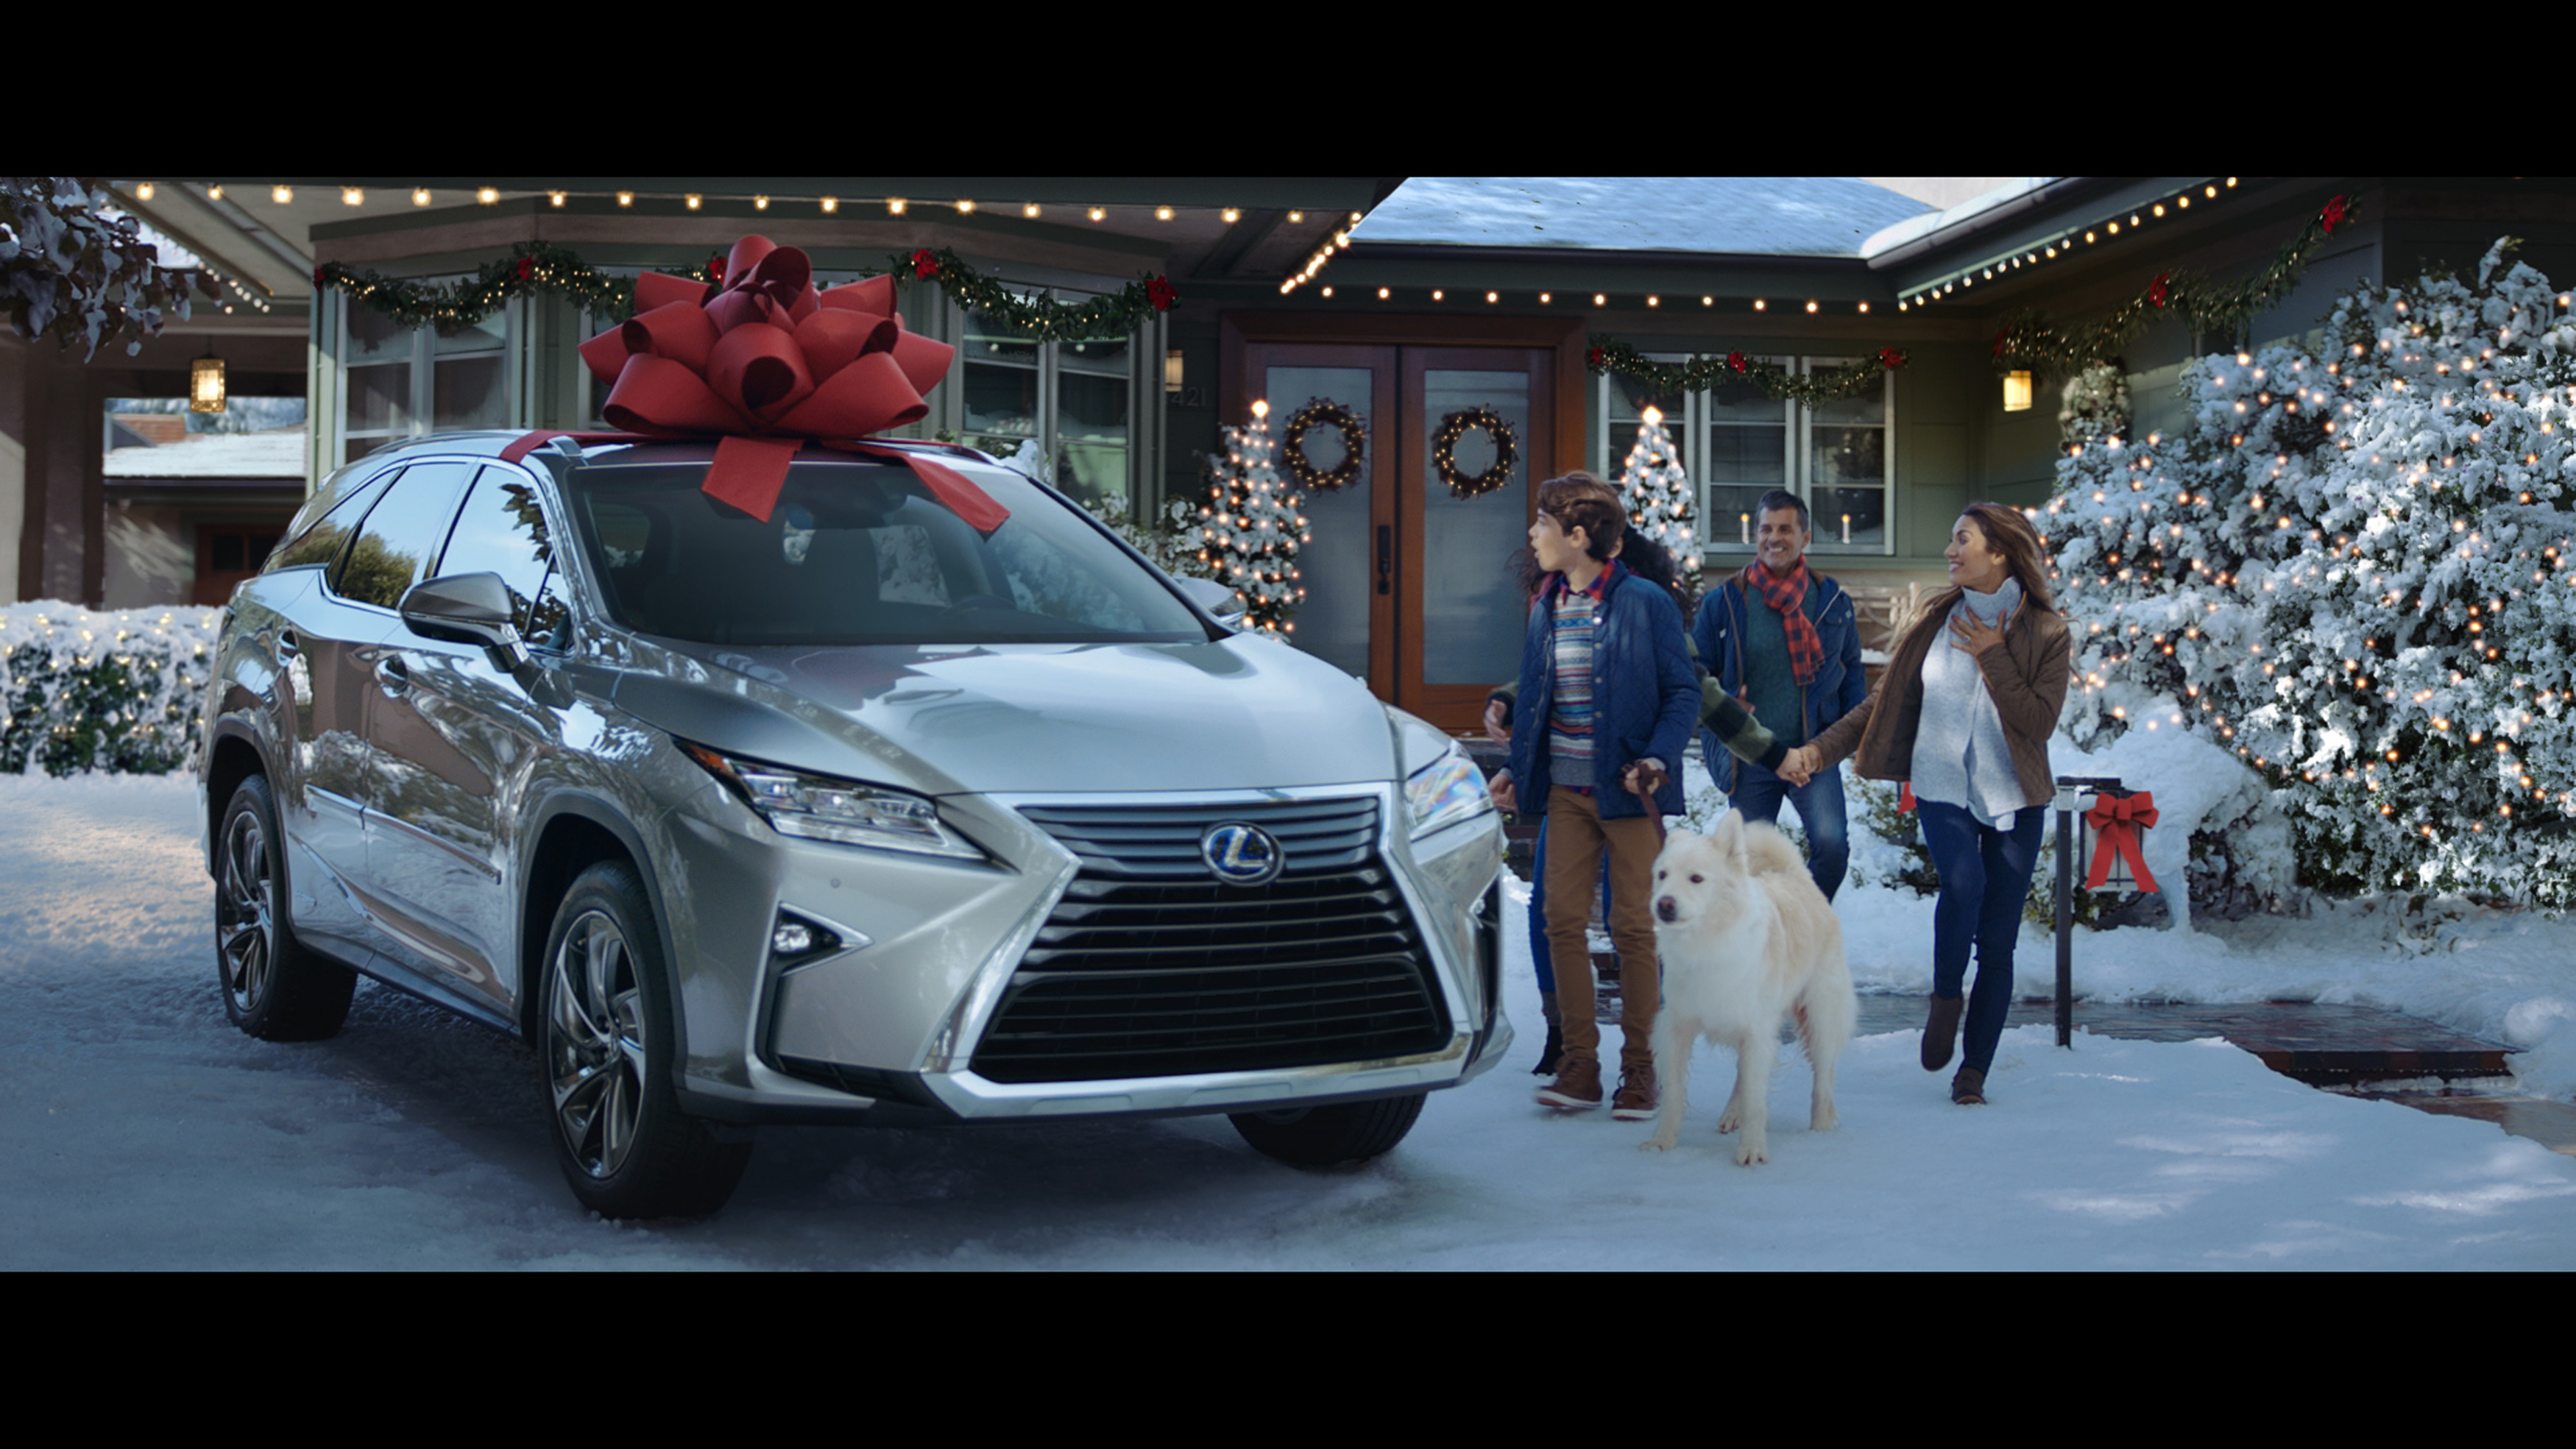 Image result for lexus hybrid models with bows december to remember